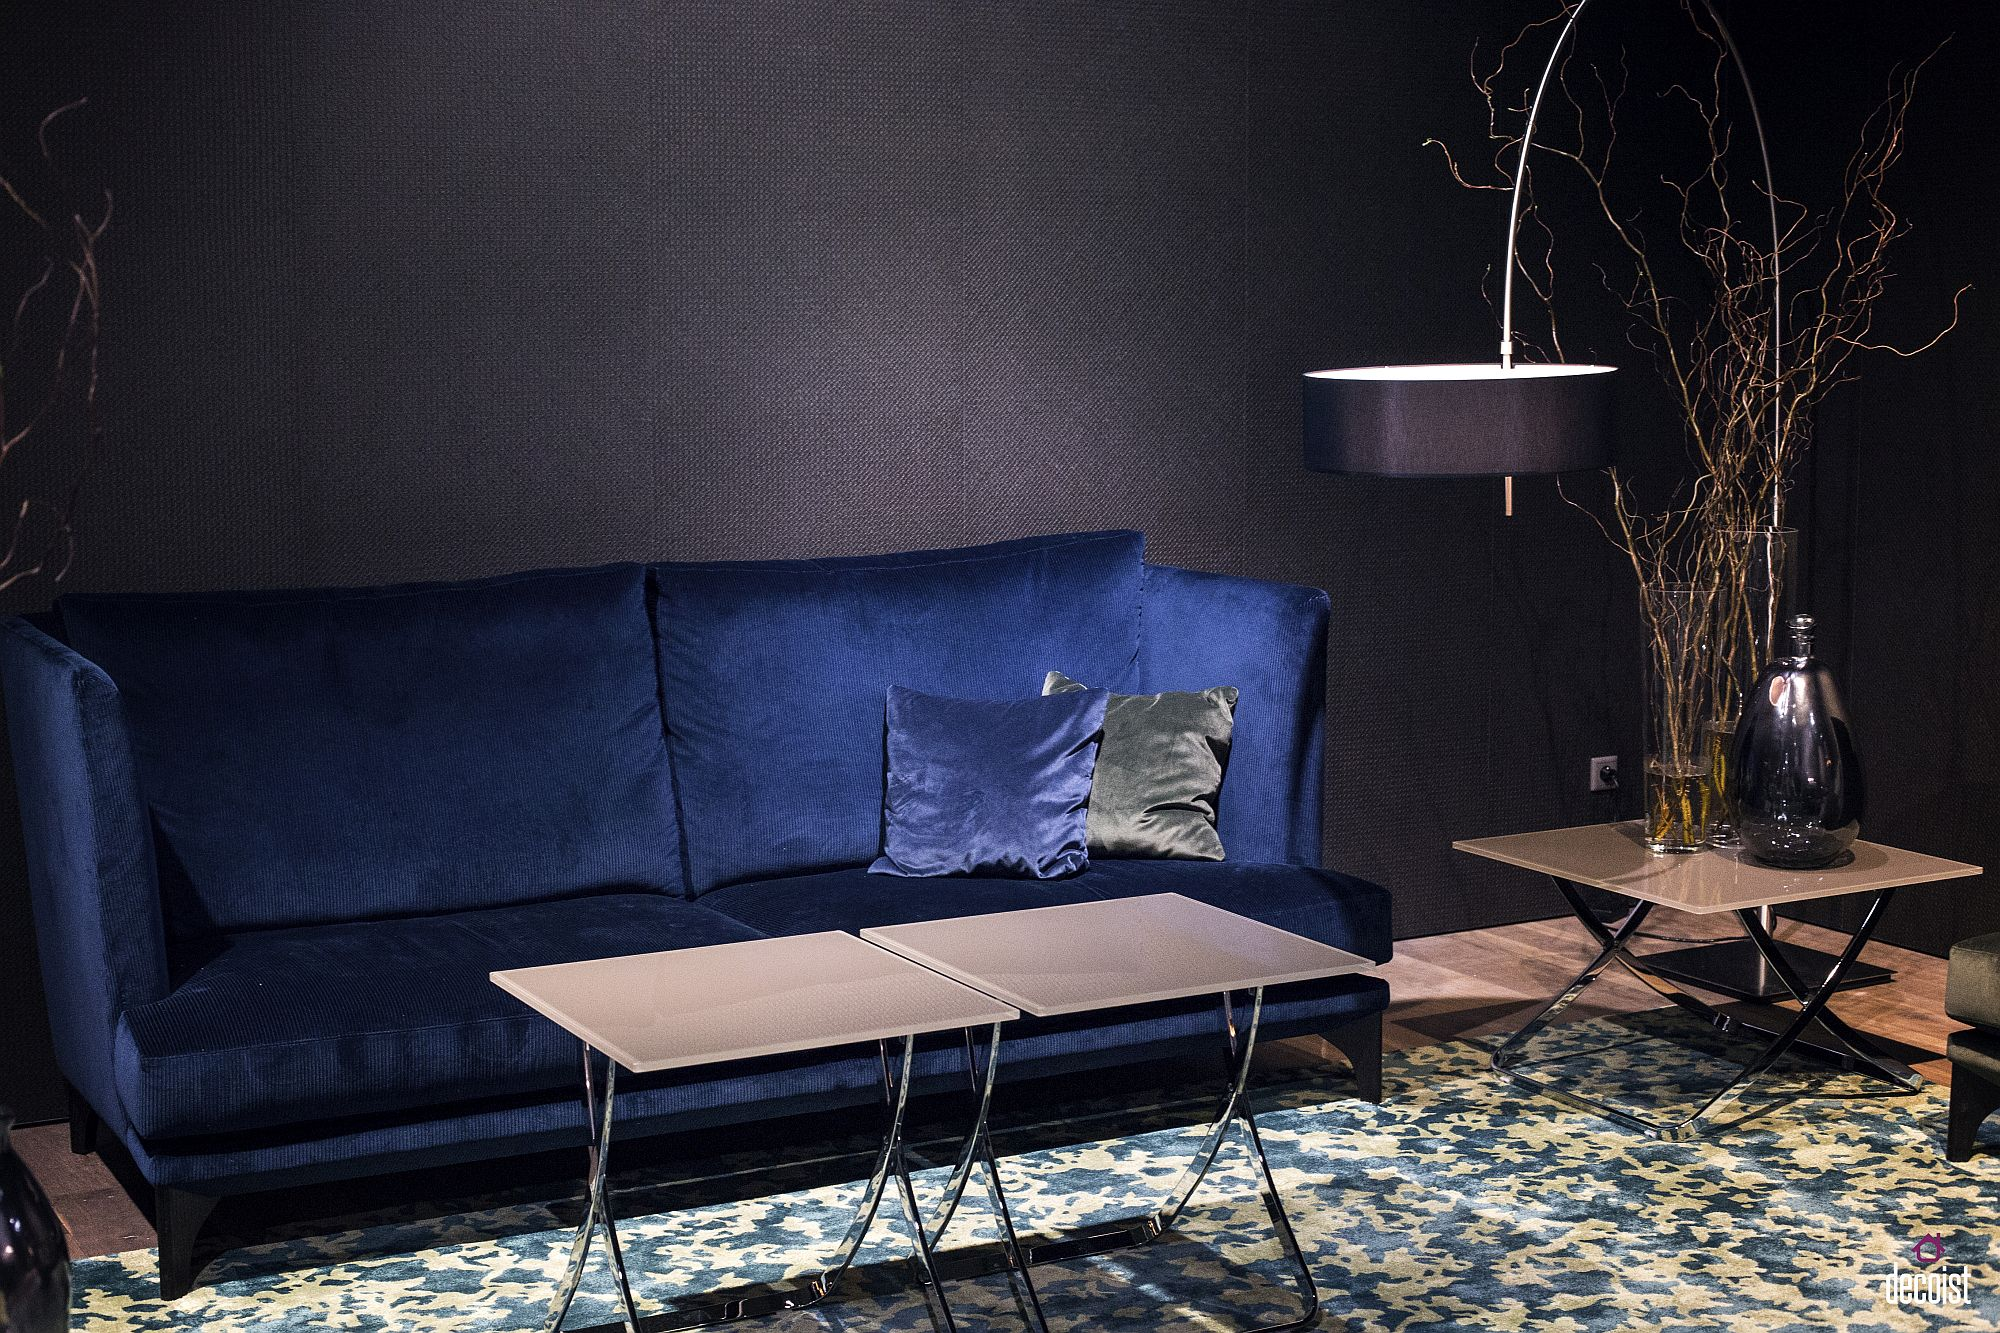 Dazzling peacock blue for the couch is a showstopper